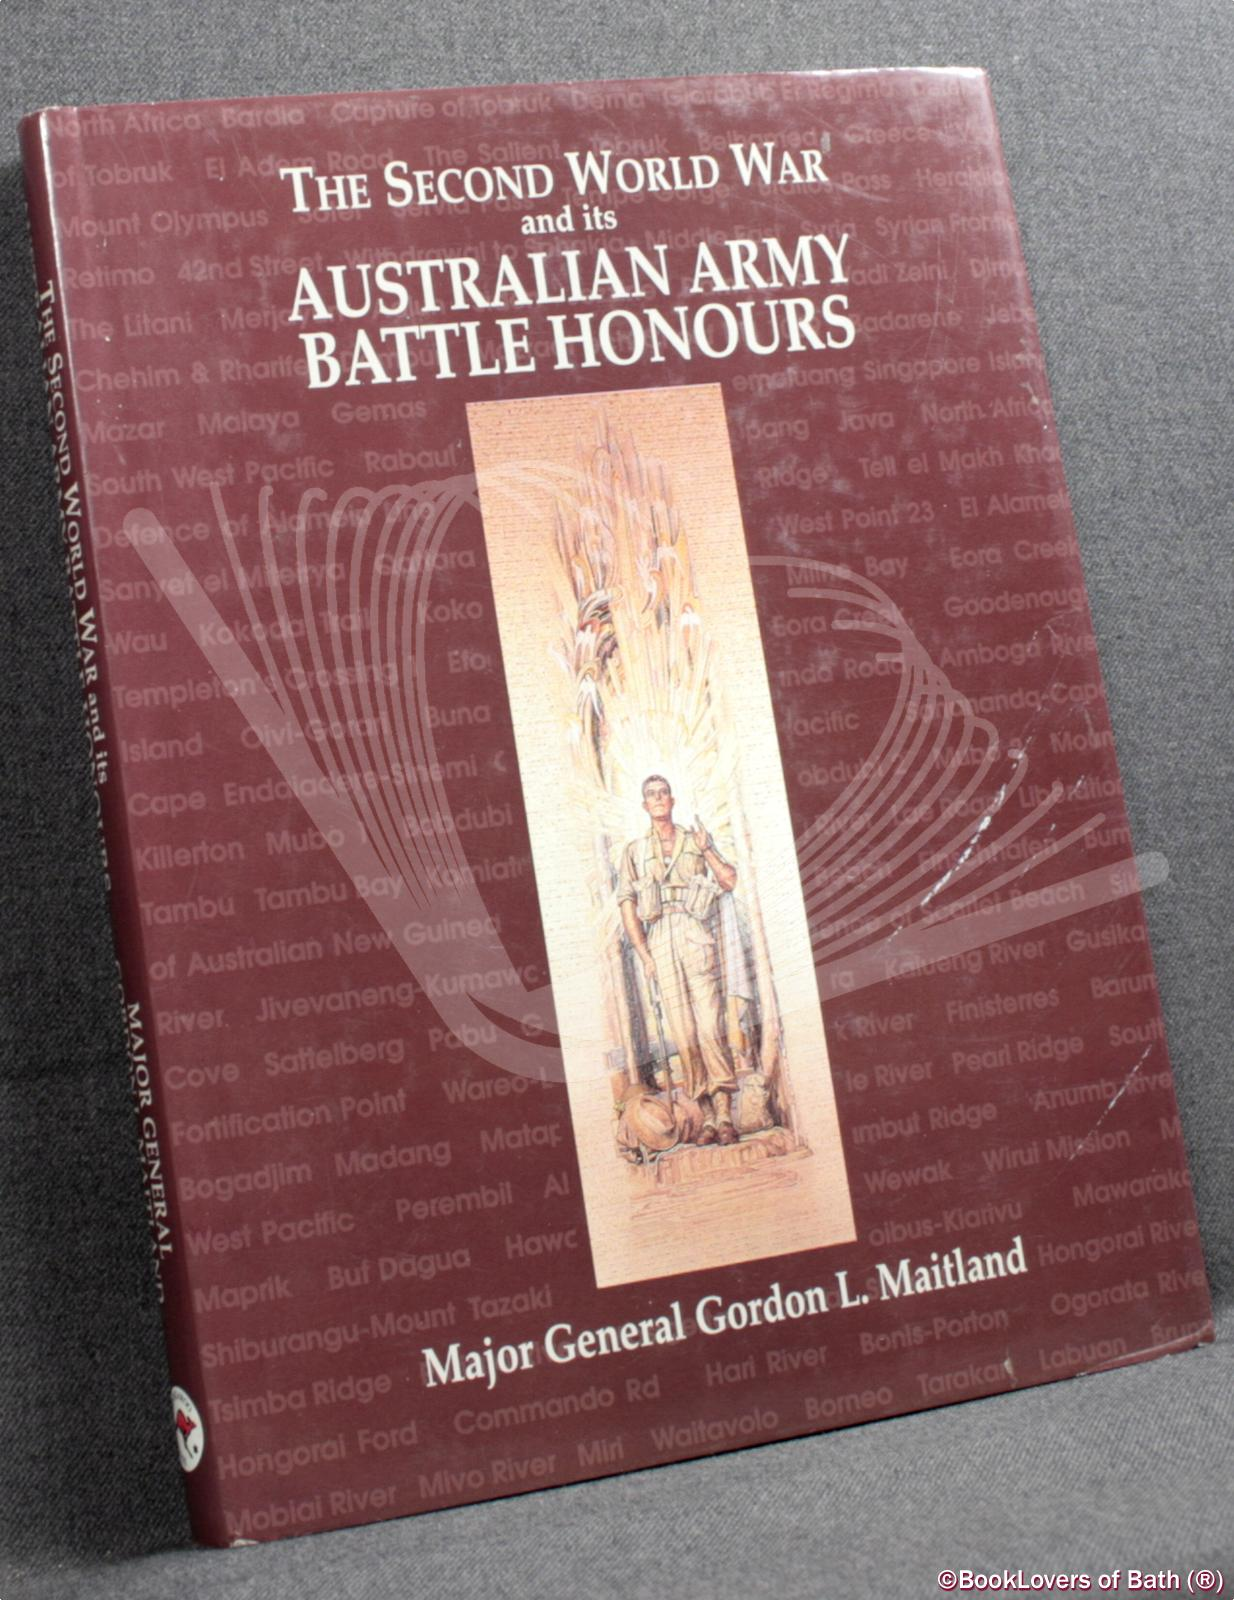 The Second World War and Its Australian Army Battle Honours - Major General Gordon L. Maitland